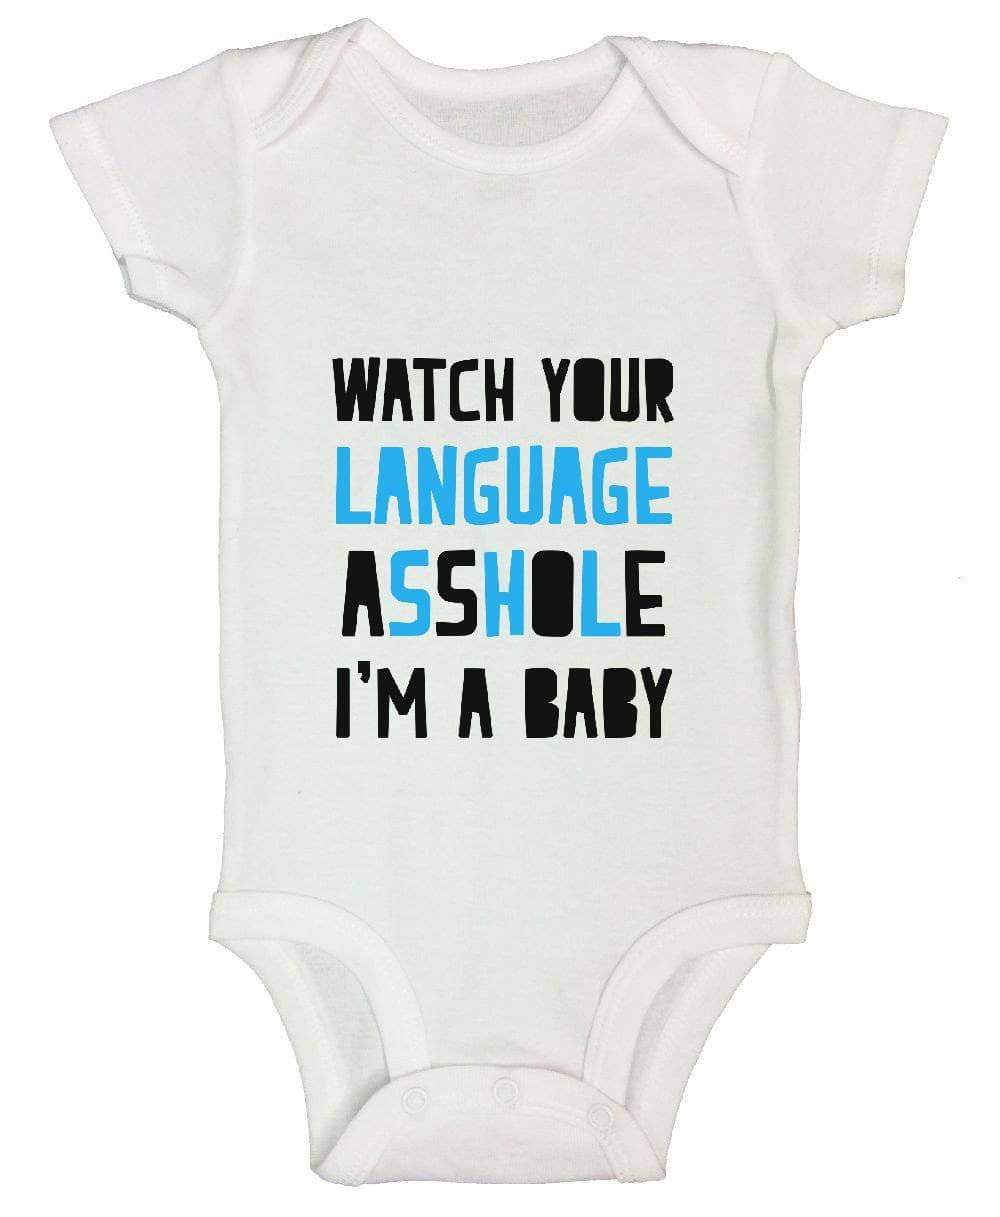 Watch Your Language Asshole I'm A Baby FUNNY KIDS ONESIE Short Sleeve 0-3 Months Womens Tank Tops